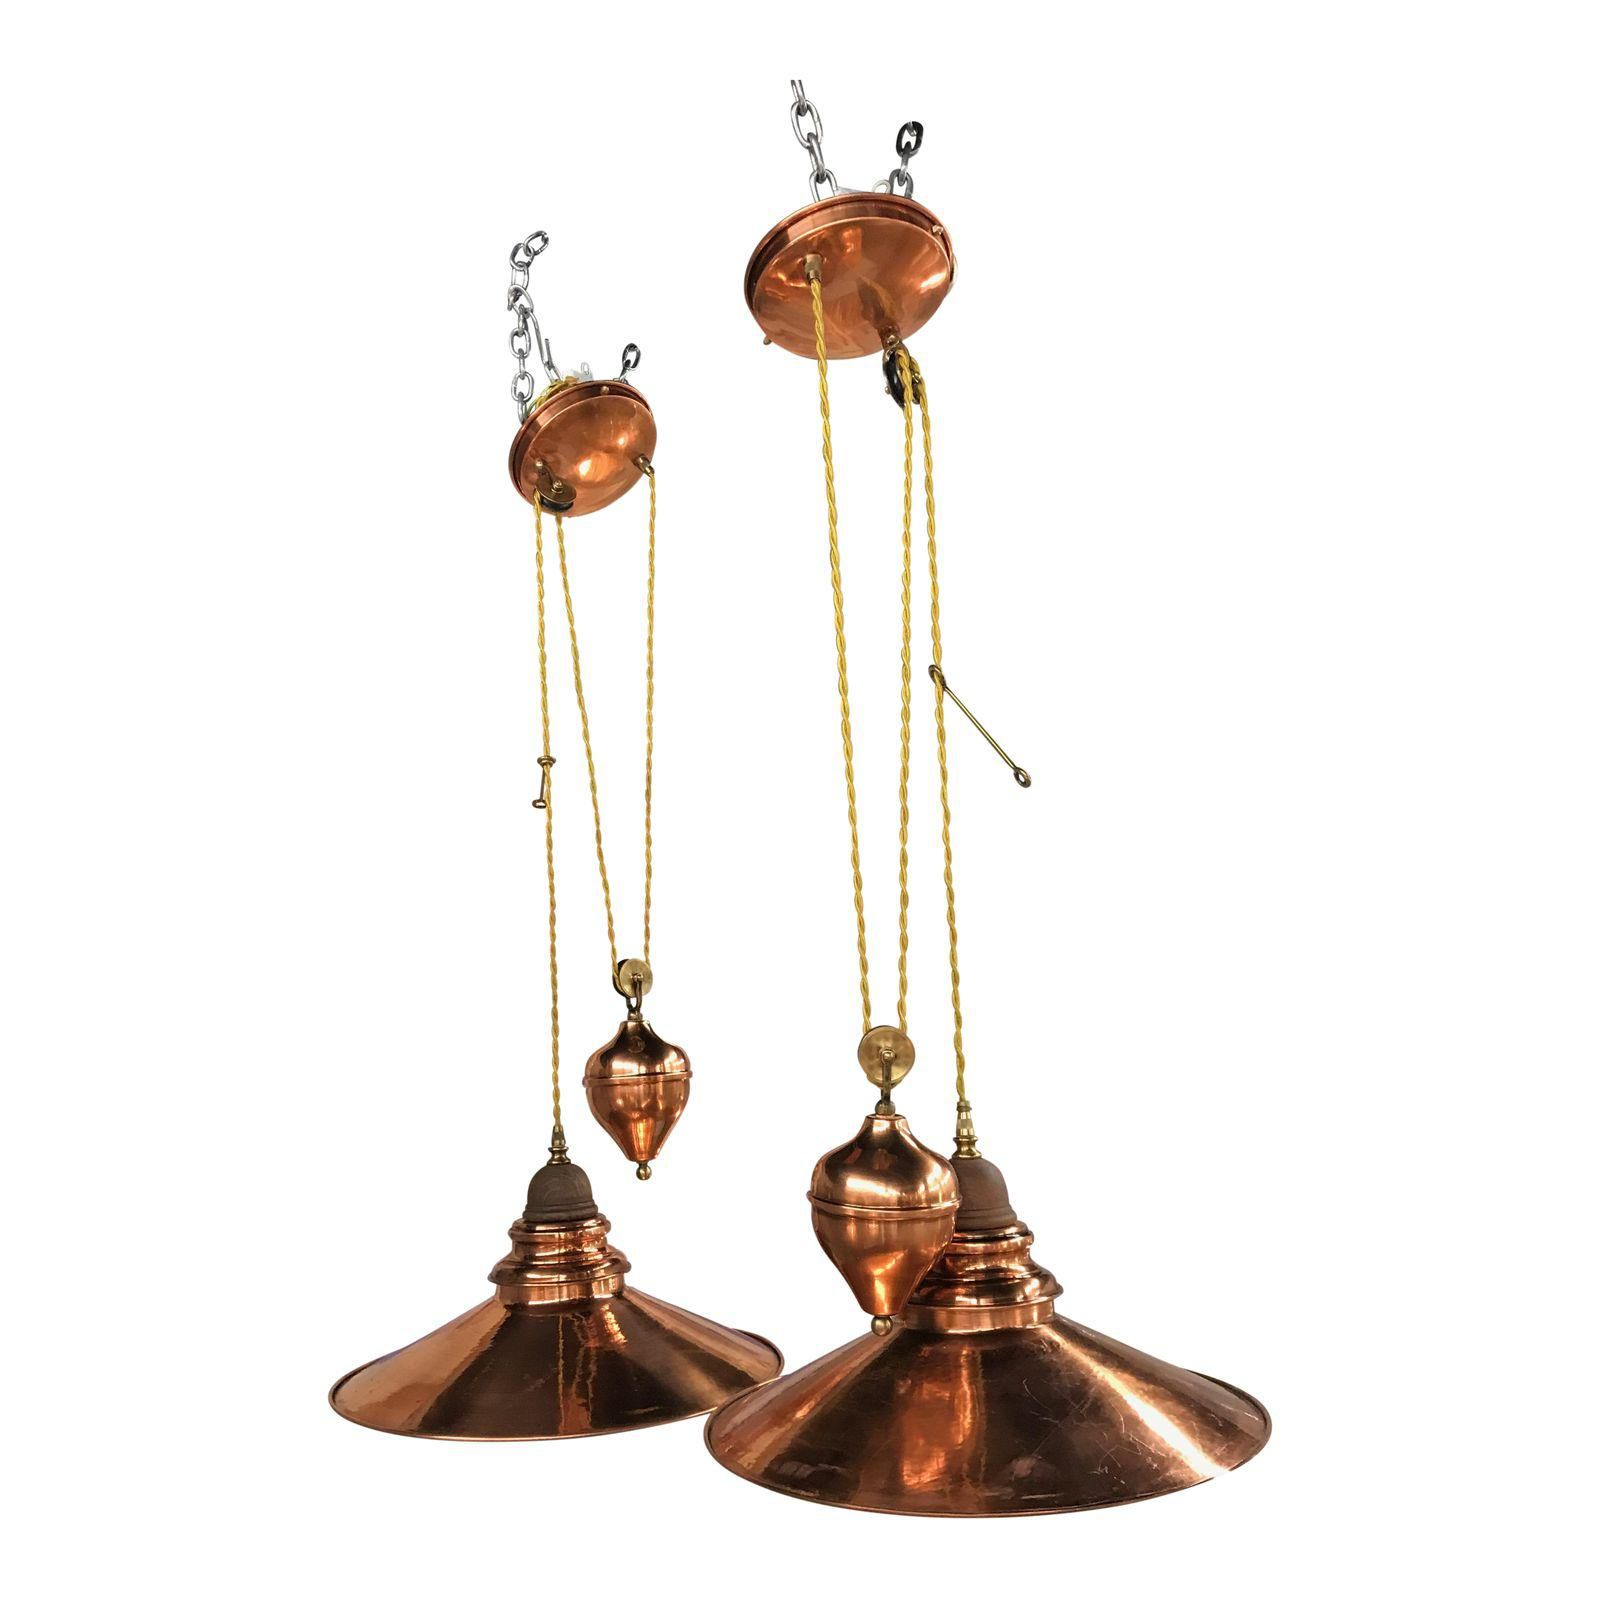 french house lighting. Copper Rise And Fall Pendant Lights - Pierre Vergnes For The French House A Pair Lighting